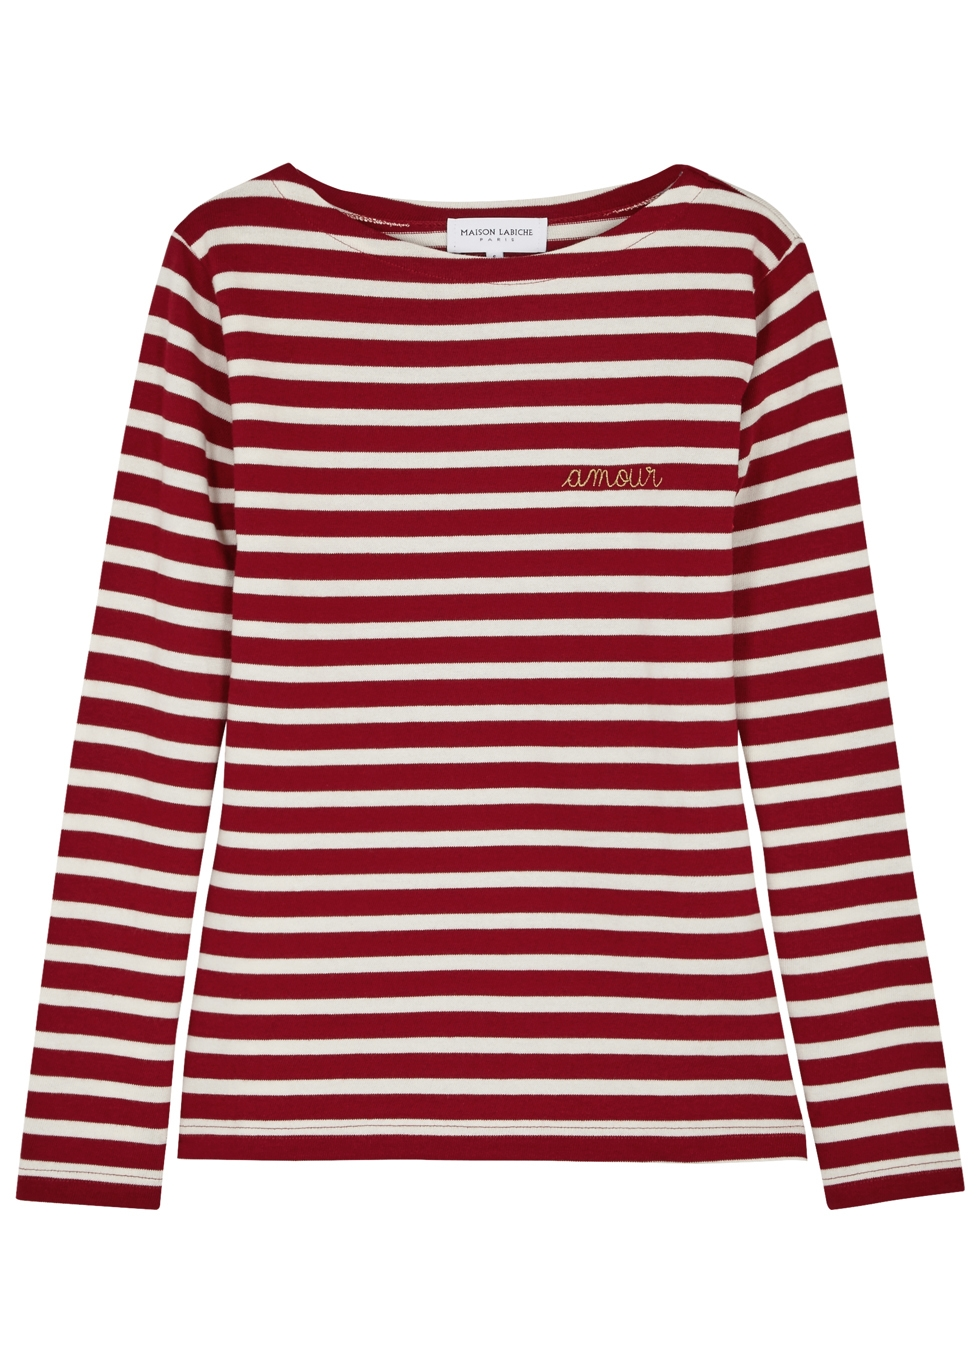 MAISON LABICHE Oh La La Striped Cotton Top in Stripes